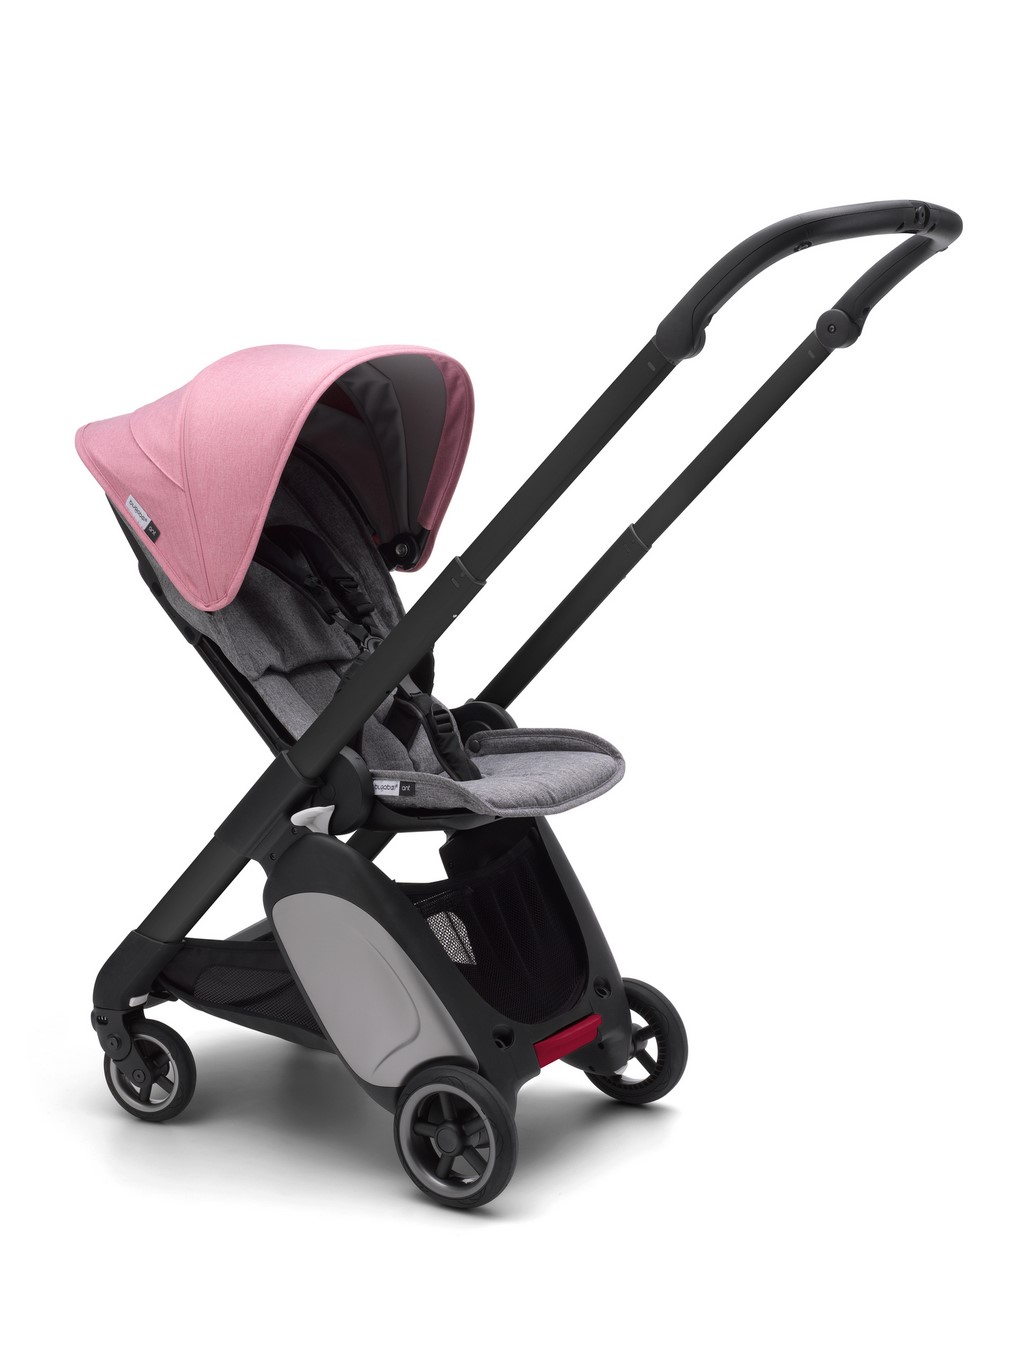 /ficheros/productos/892921extra-AUS Bugaboo_Ant_ZW_36.jpg